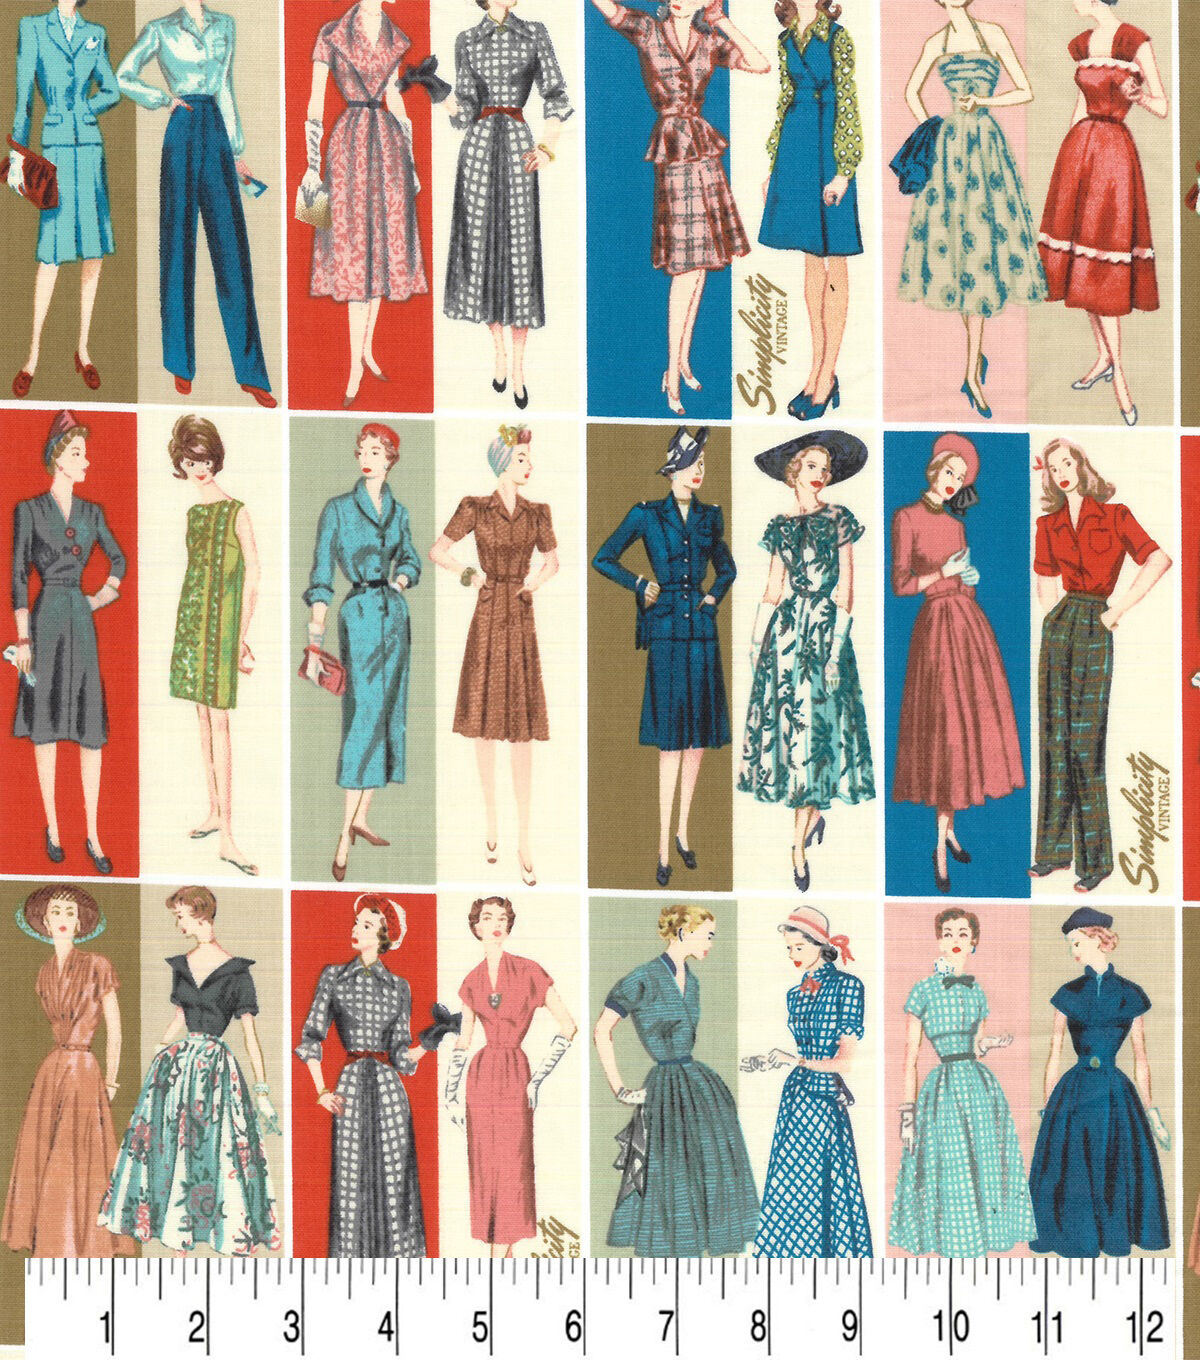 1960s Sewing Patterns | 1970s Sewing Patterns Premium Cotton Fabric Simplicity Vintage Ladies $8.99 AT vintagedancer.com